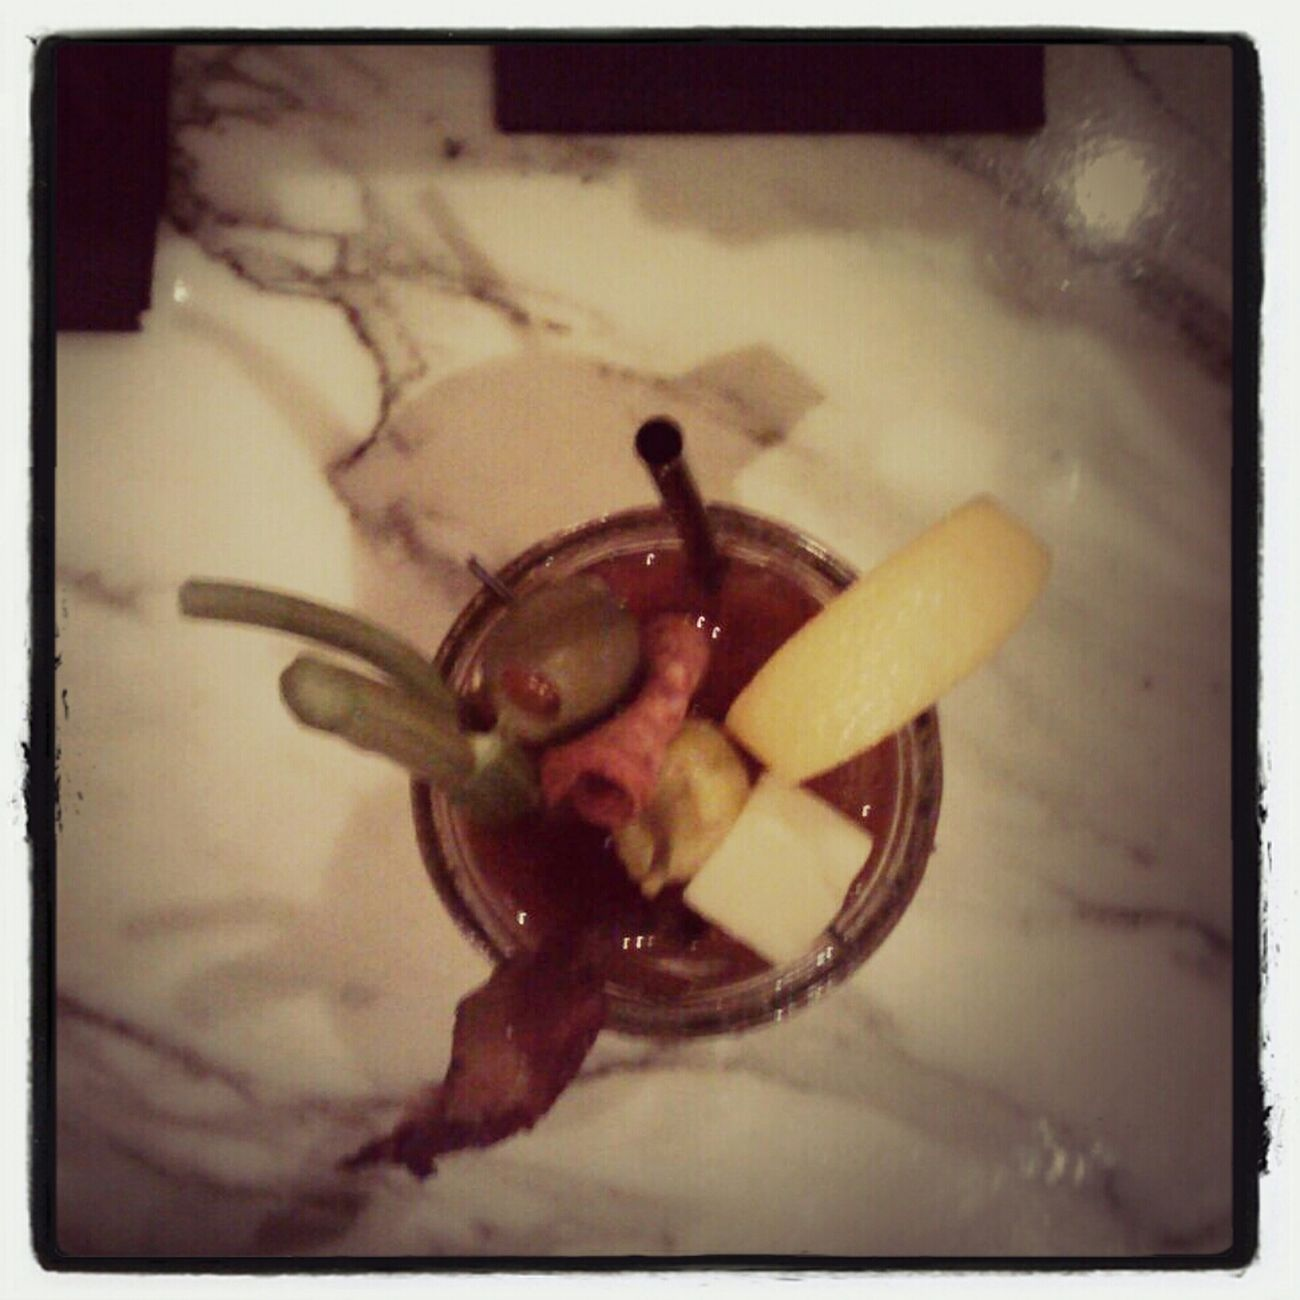 My bloody mary had a slice of bacon in it...among other things.